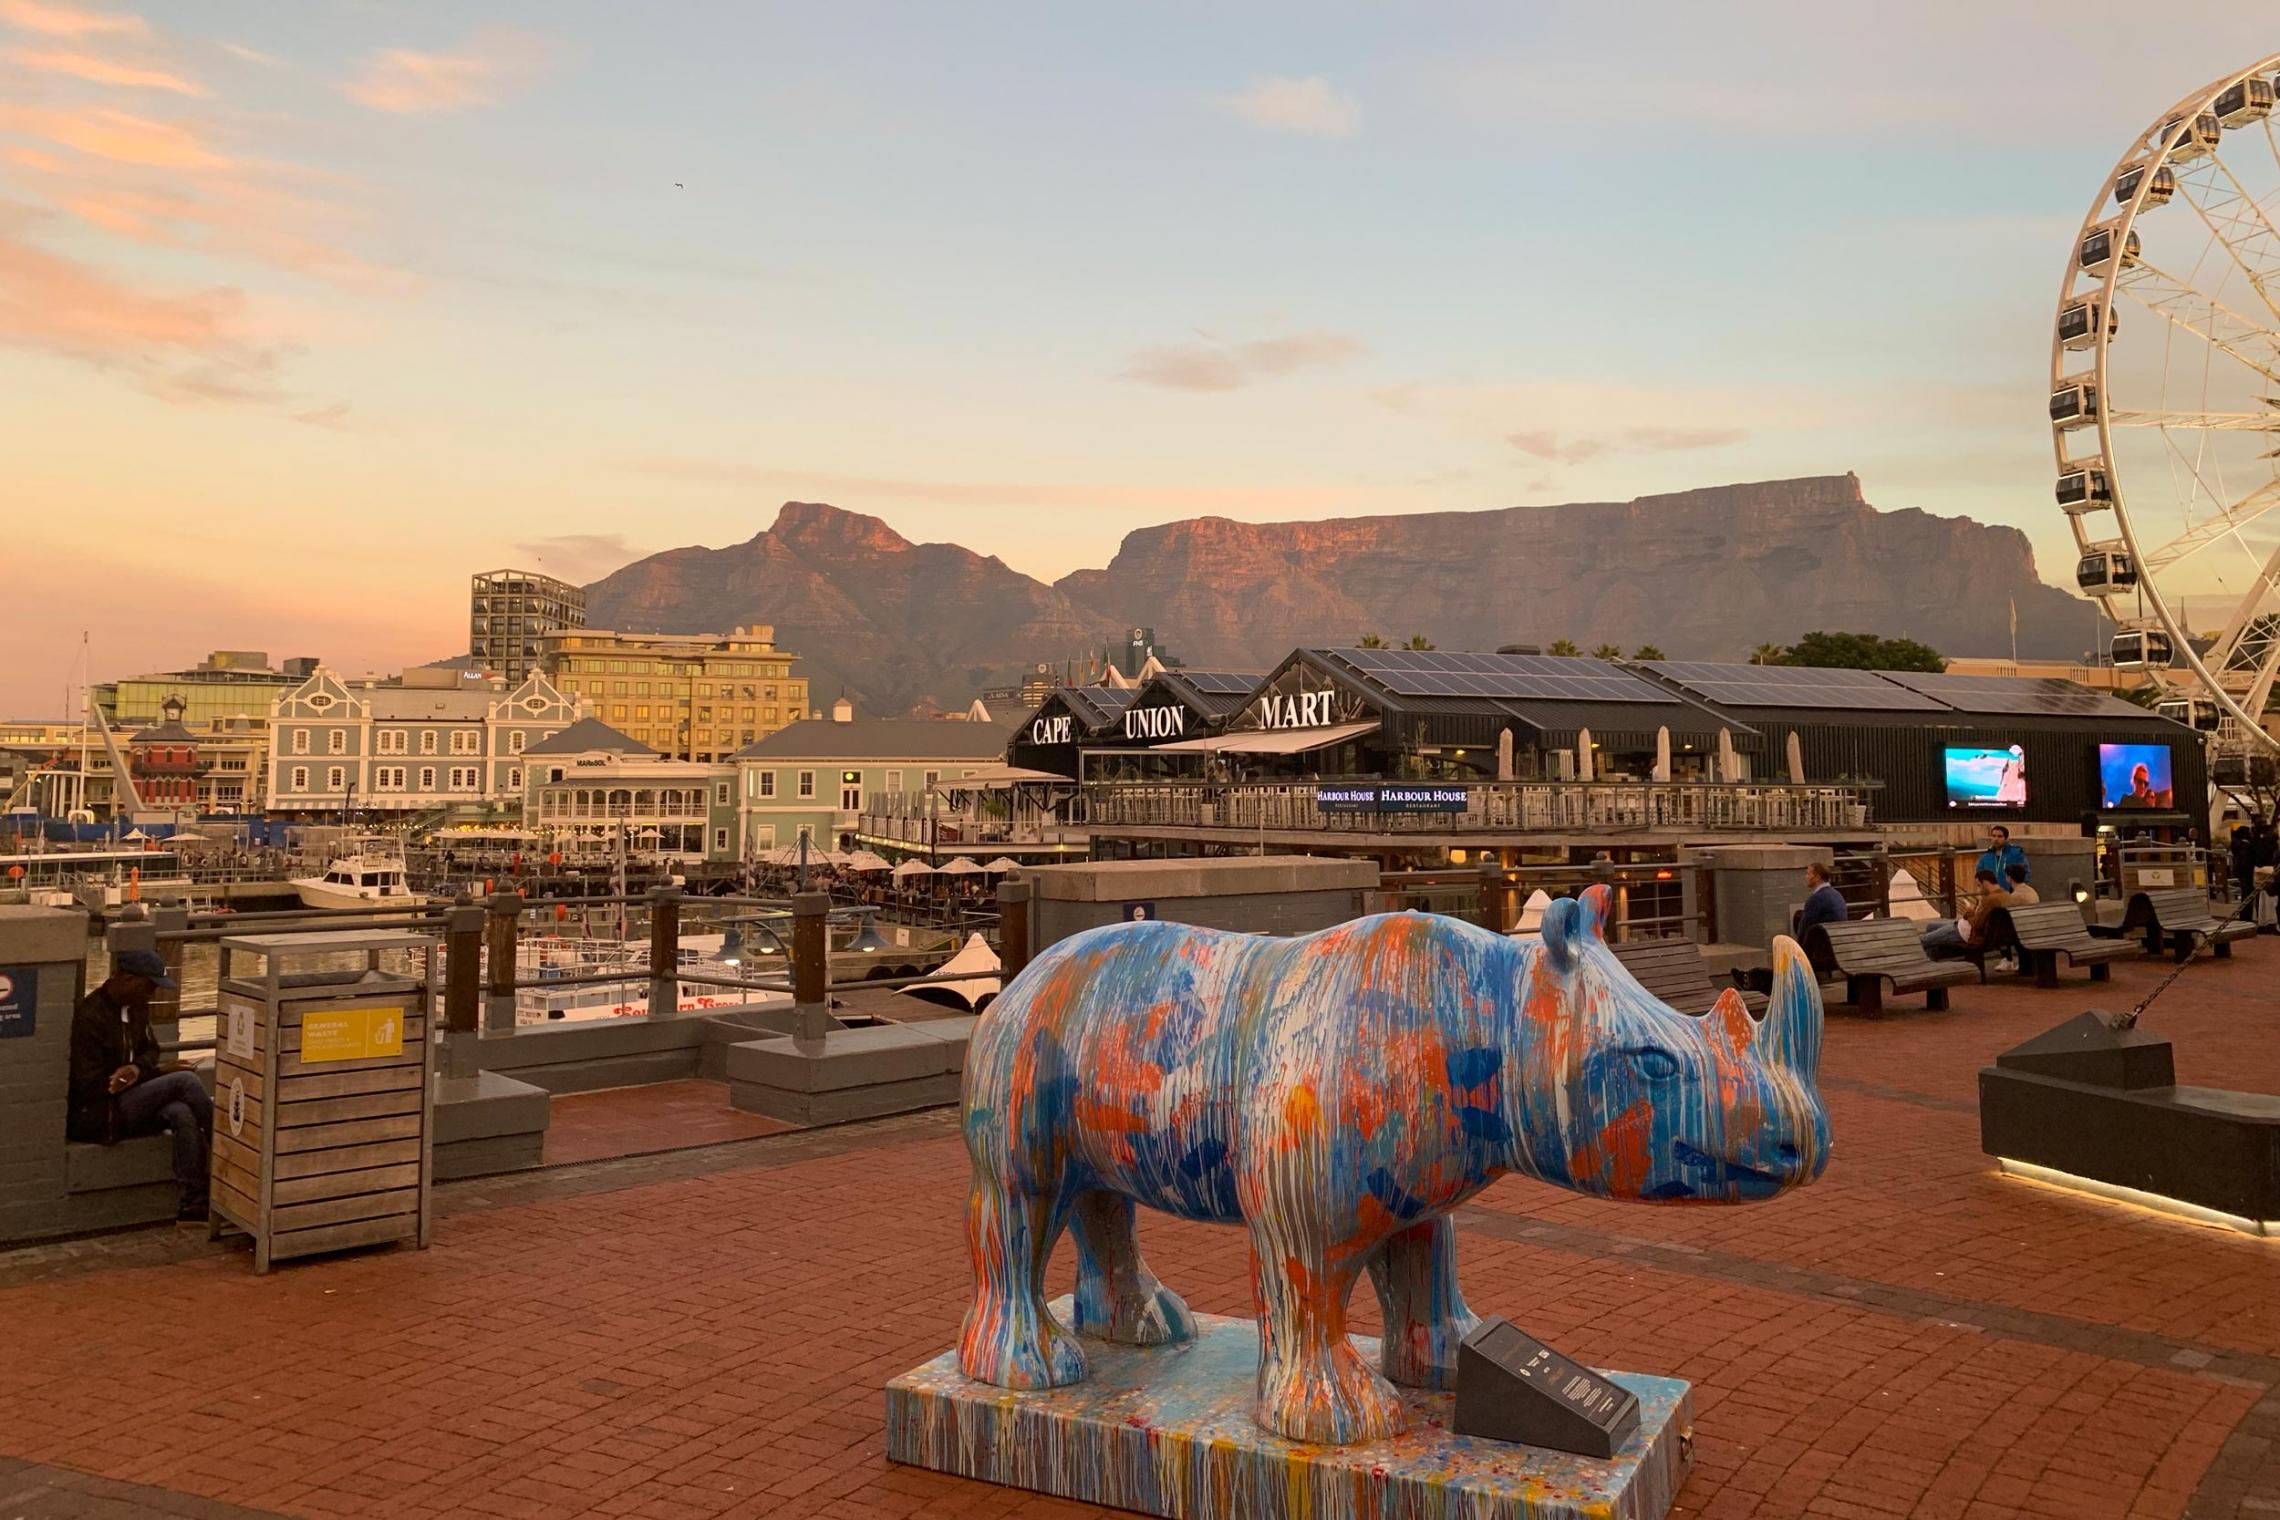 Cape Town, South Africa, is home to one of this summer's many education abroad programs.